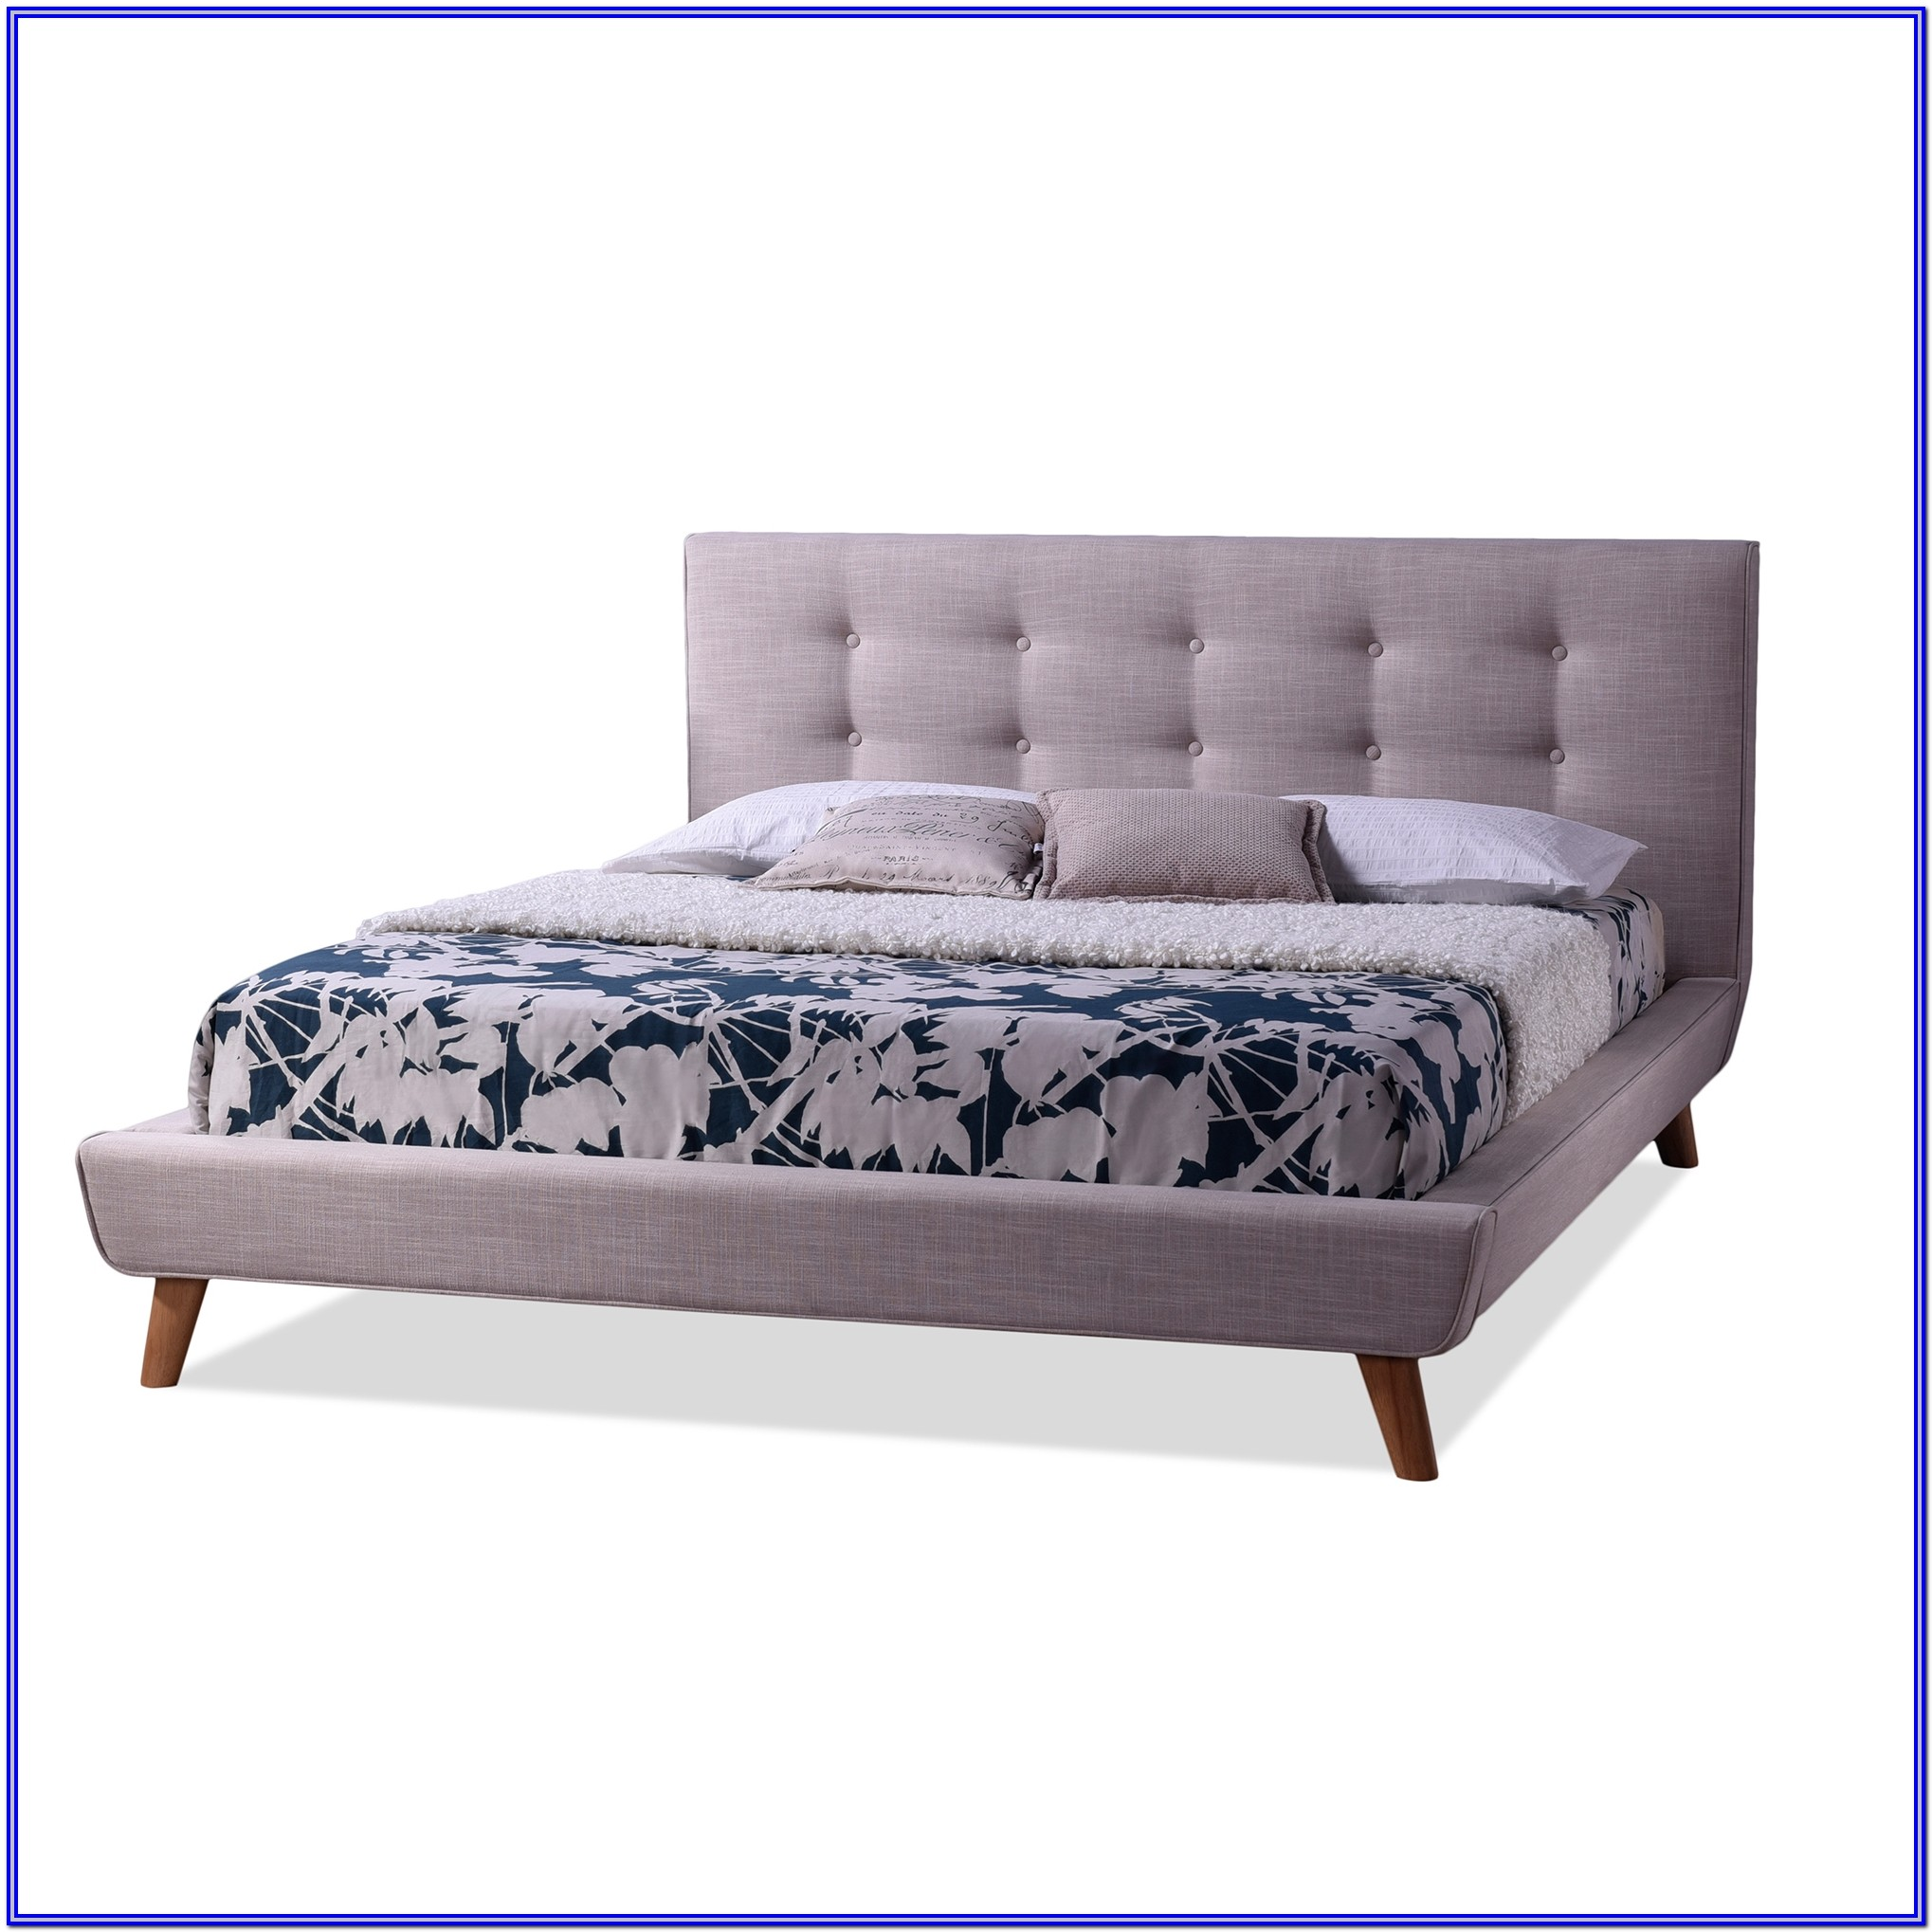 Baxton Studio King Size Bed